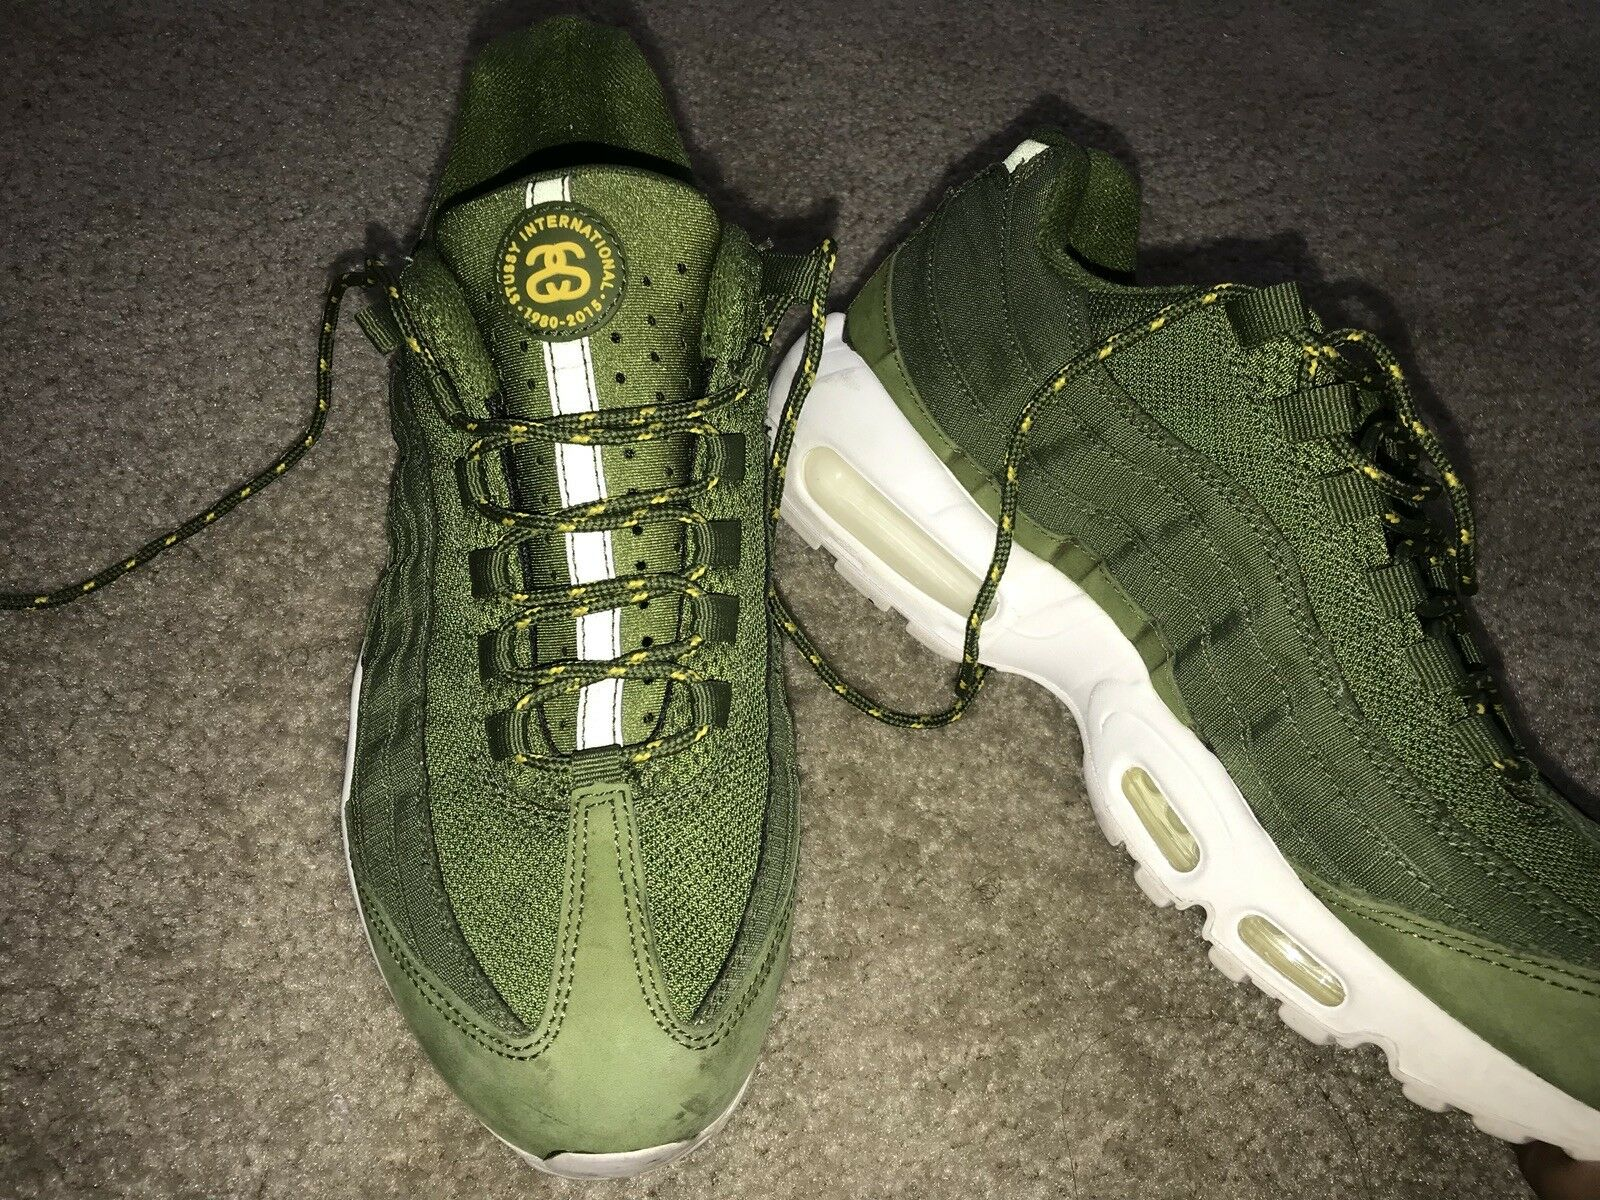 GREEN NIKE AIRMAX STUSSY  Cheap and fashionable